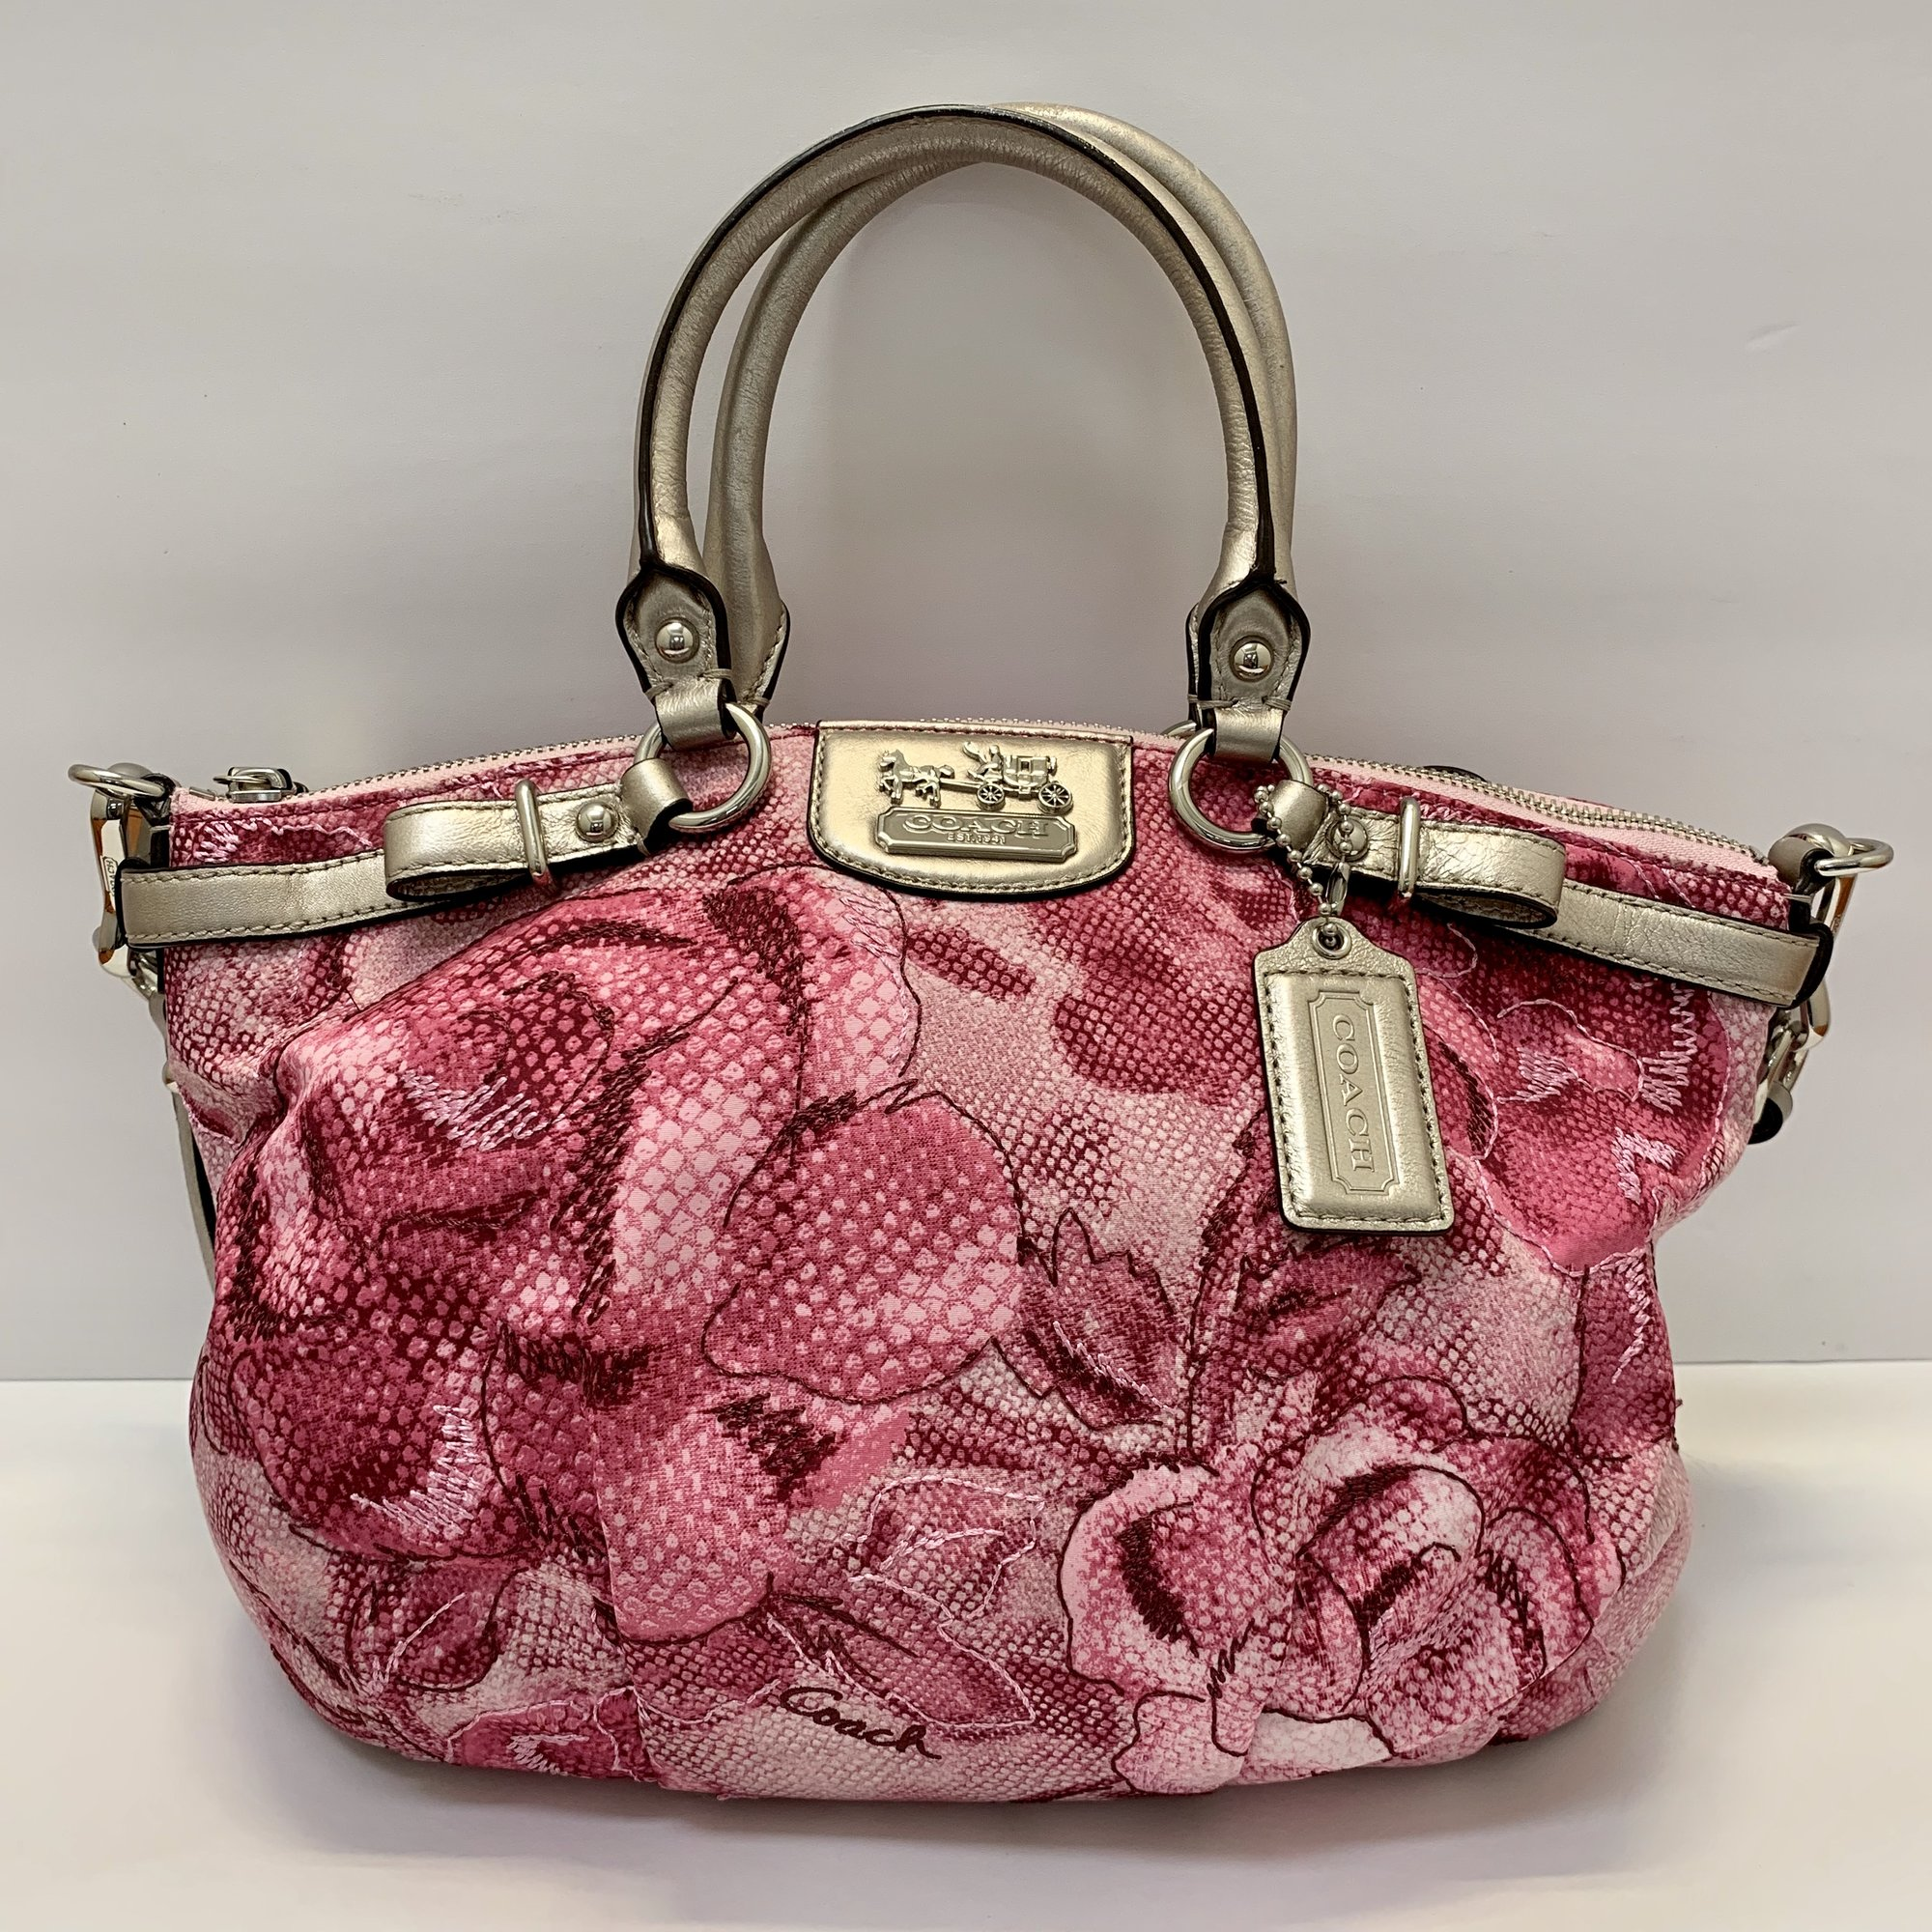 COACH Sophia Satchel<br /> Gorgeous Pink Rose Pattern with Silver Leather Trim